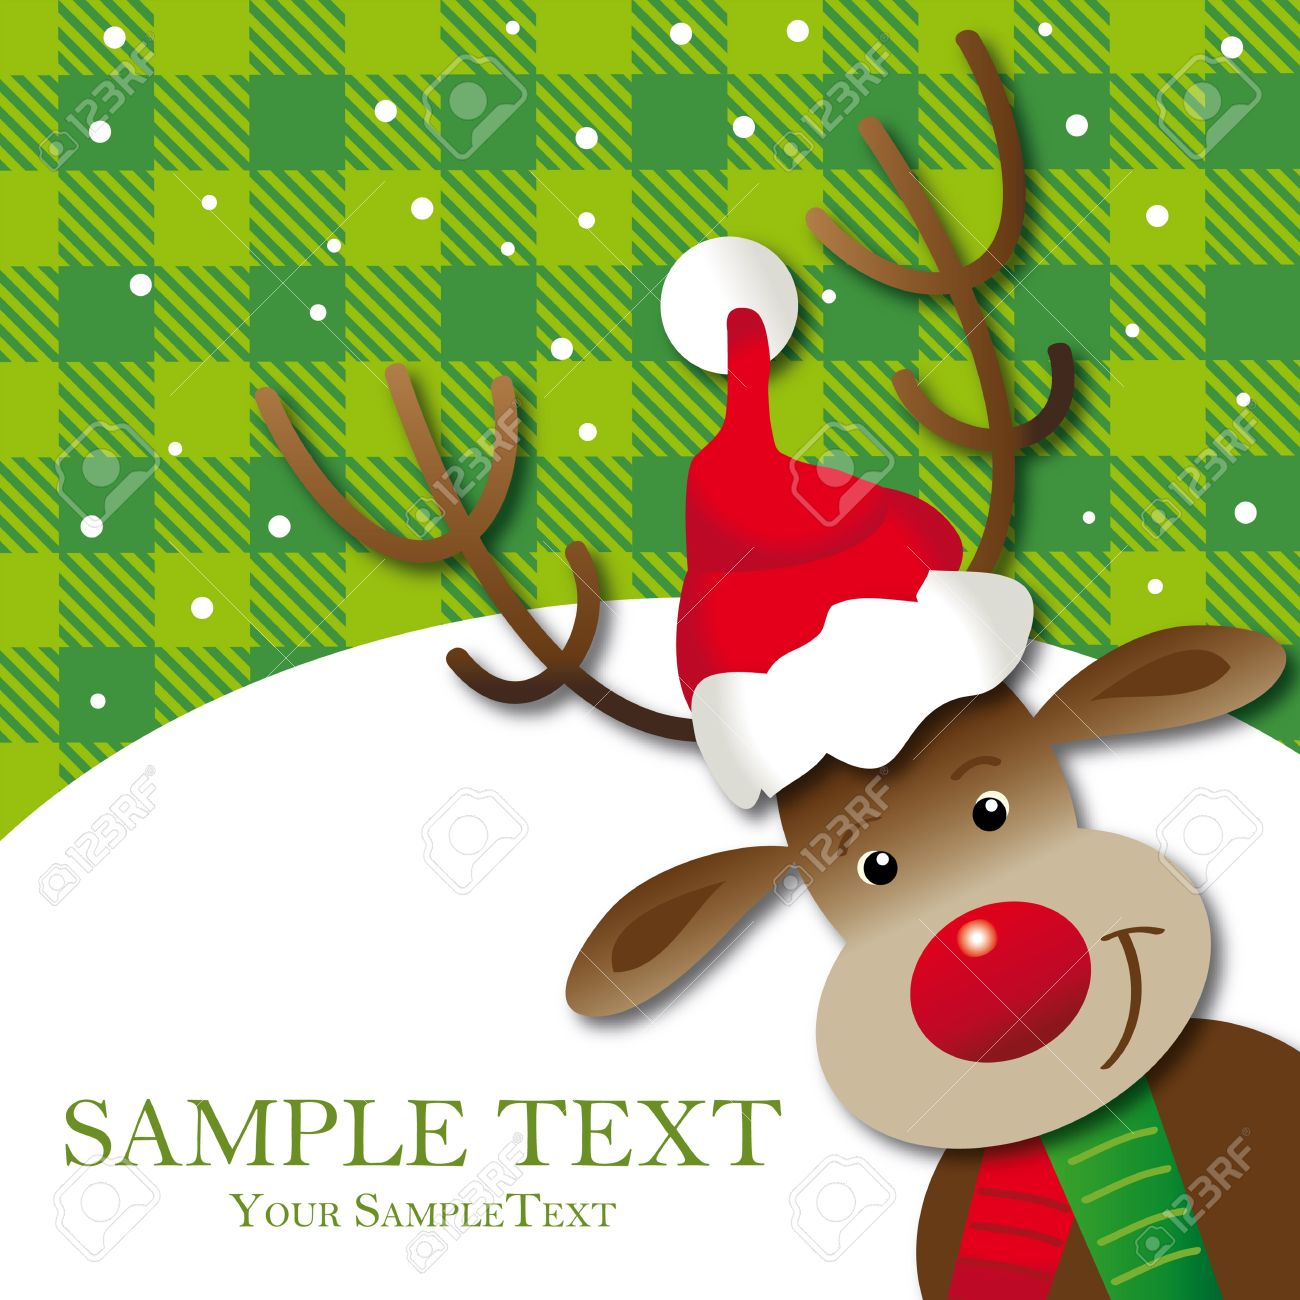 Cute Reindeer Greeting Card, Space, Xmas Royalty Free Cliparts ...